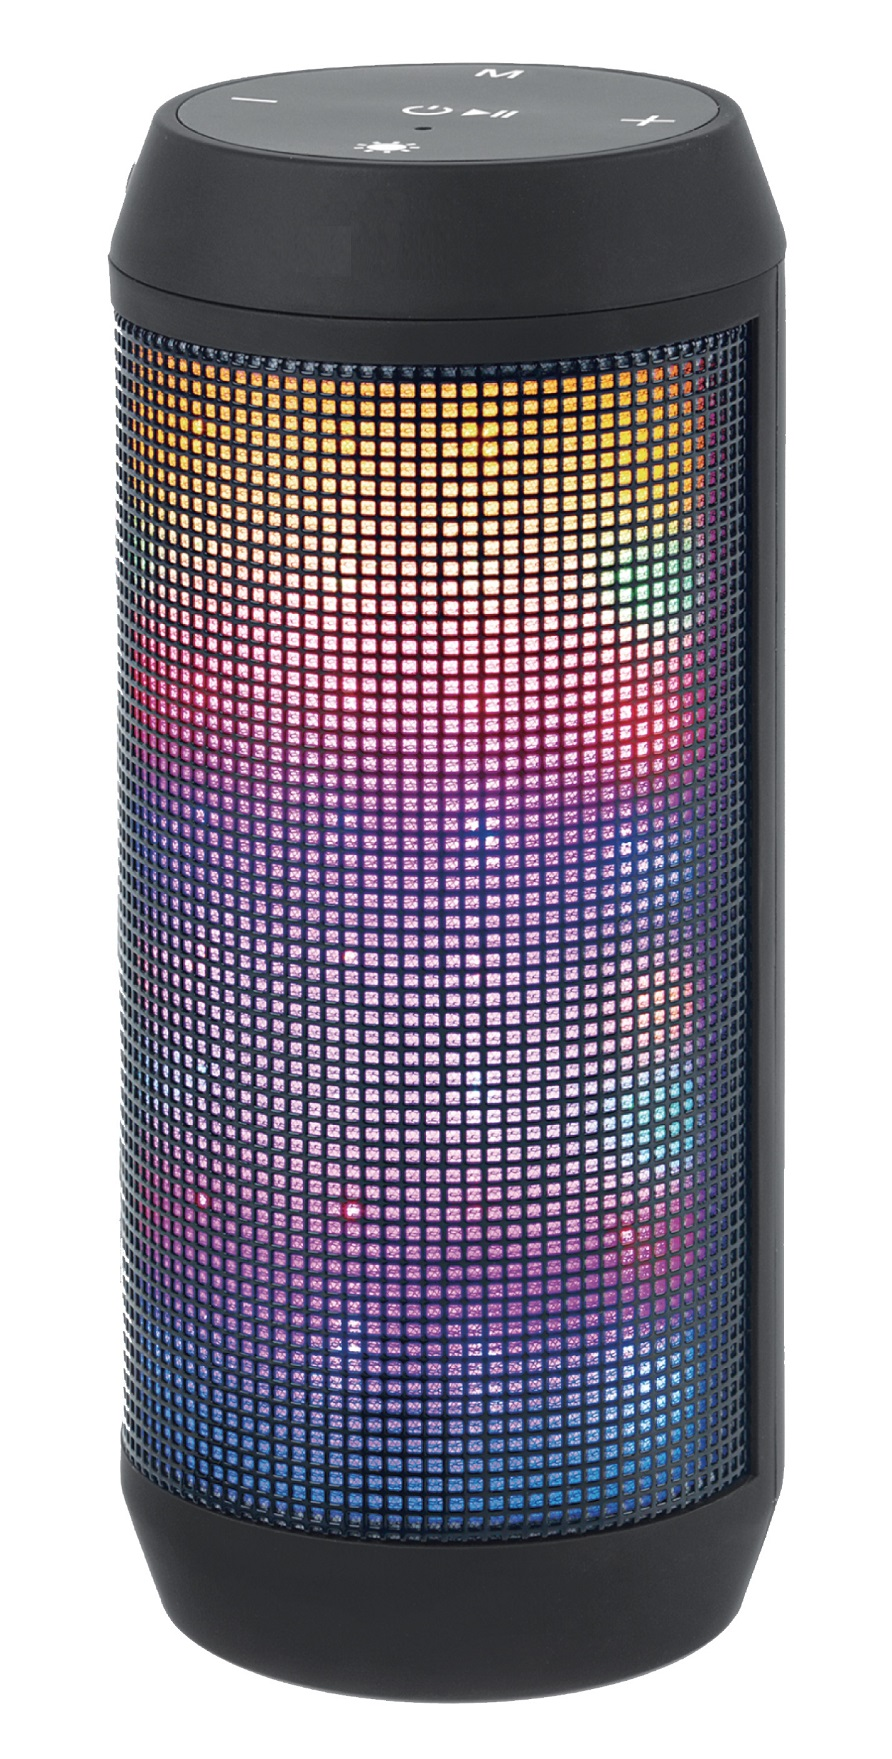 BLUETOOTH SPEAKER WITH BUILT-IN FM RADIO AND LED LIGHT FADO